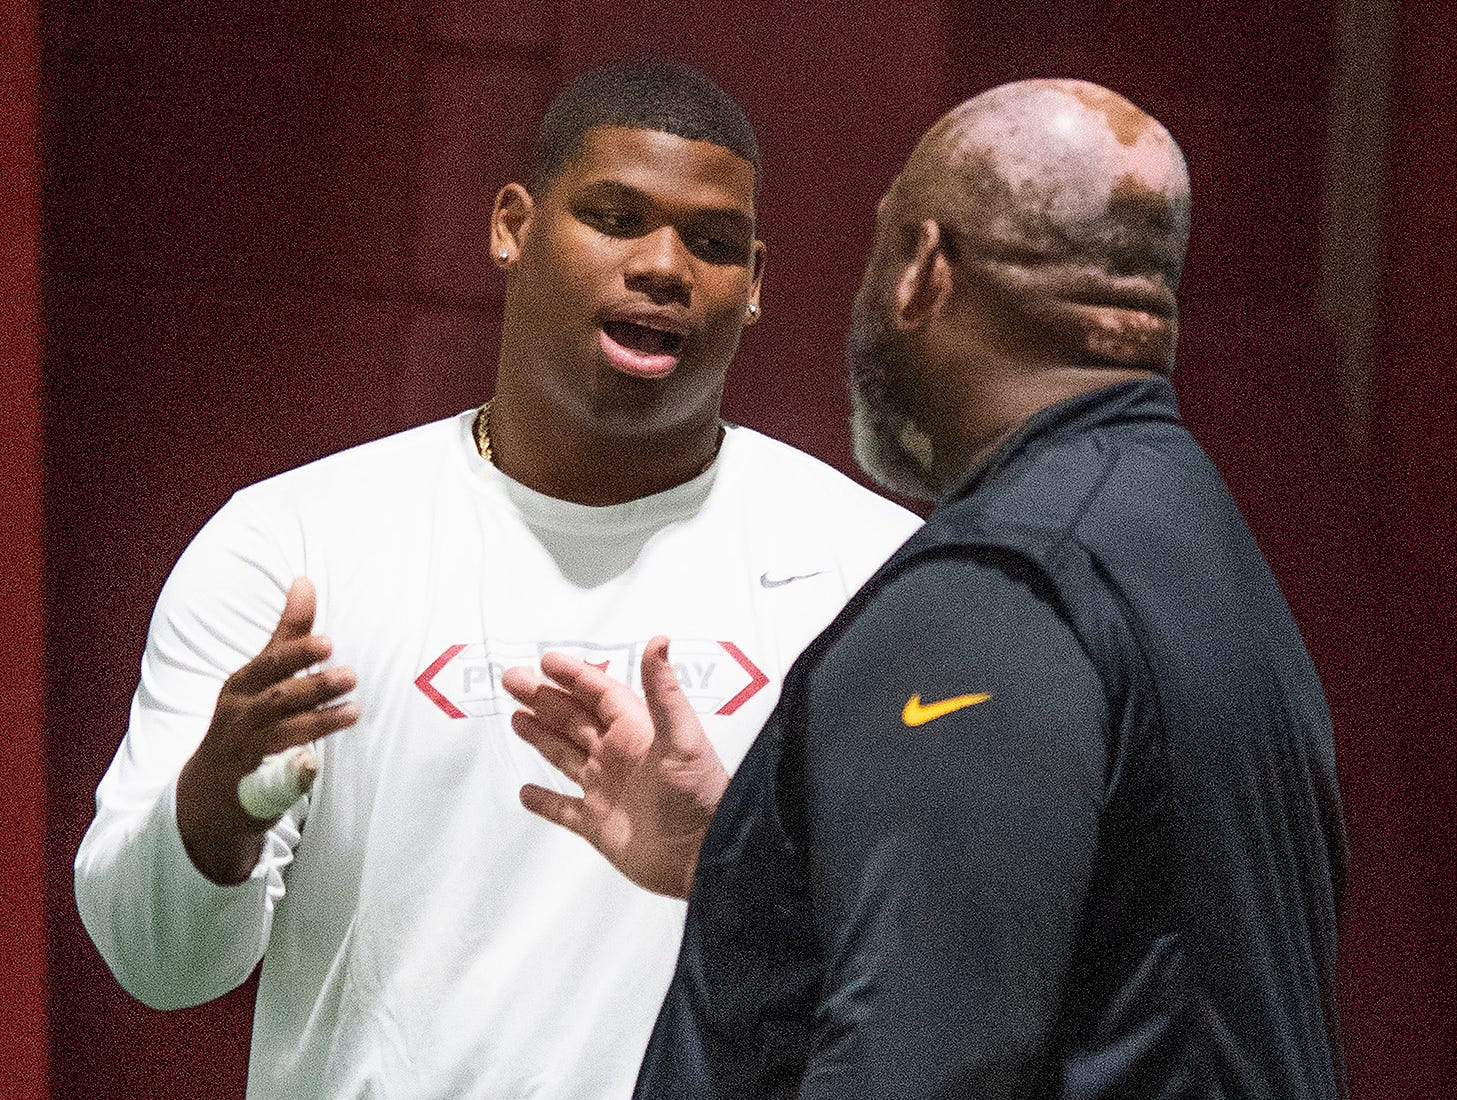 Alabama defensive lineman Quinnen Williams during Pro Day on the University of Alabama campus in Tuscaloosa, Ala., on Tuesday March 19, 2019.